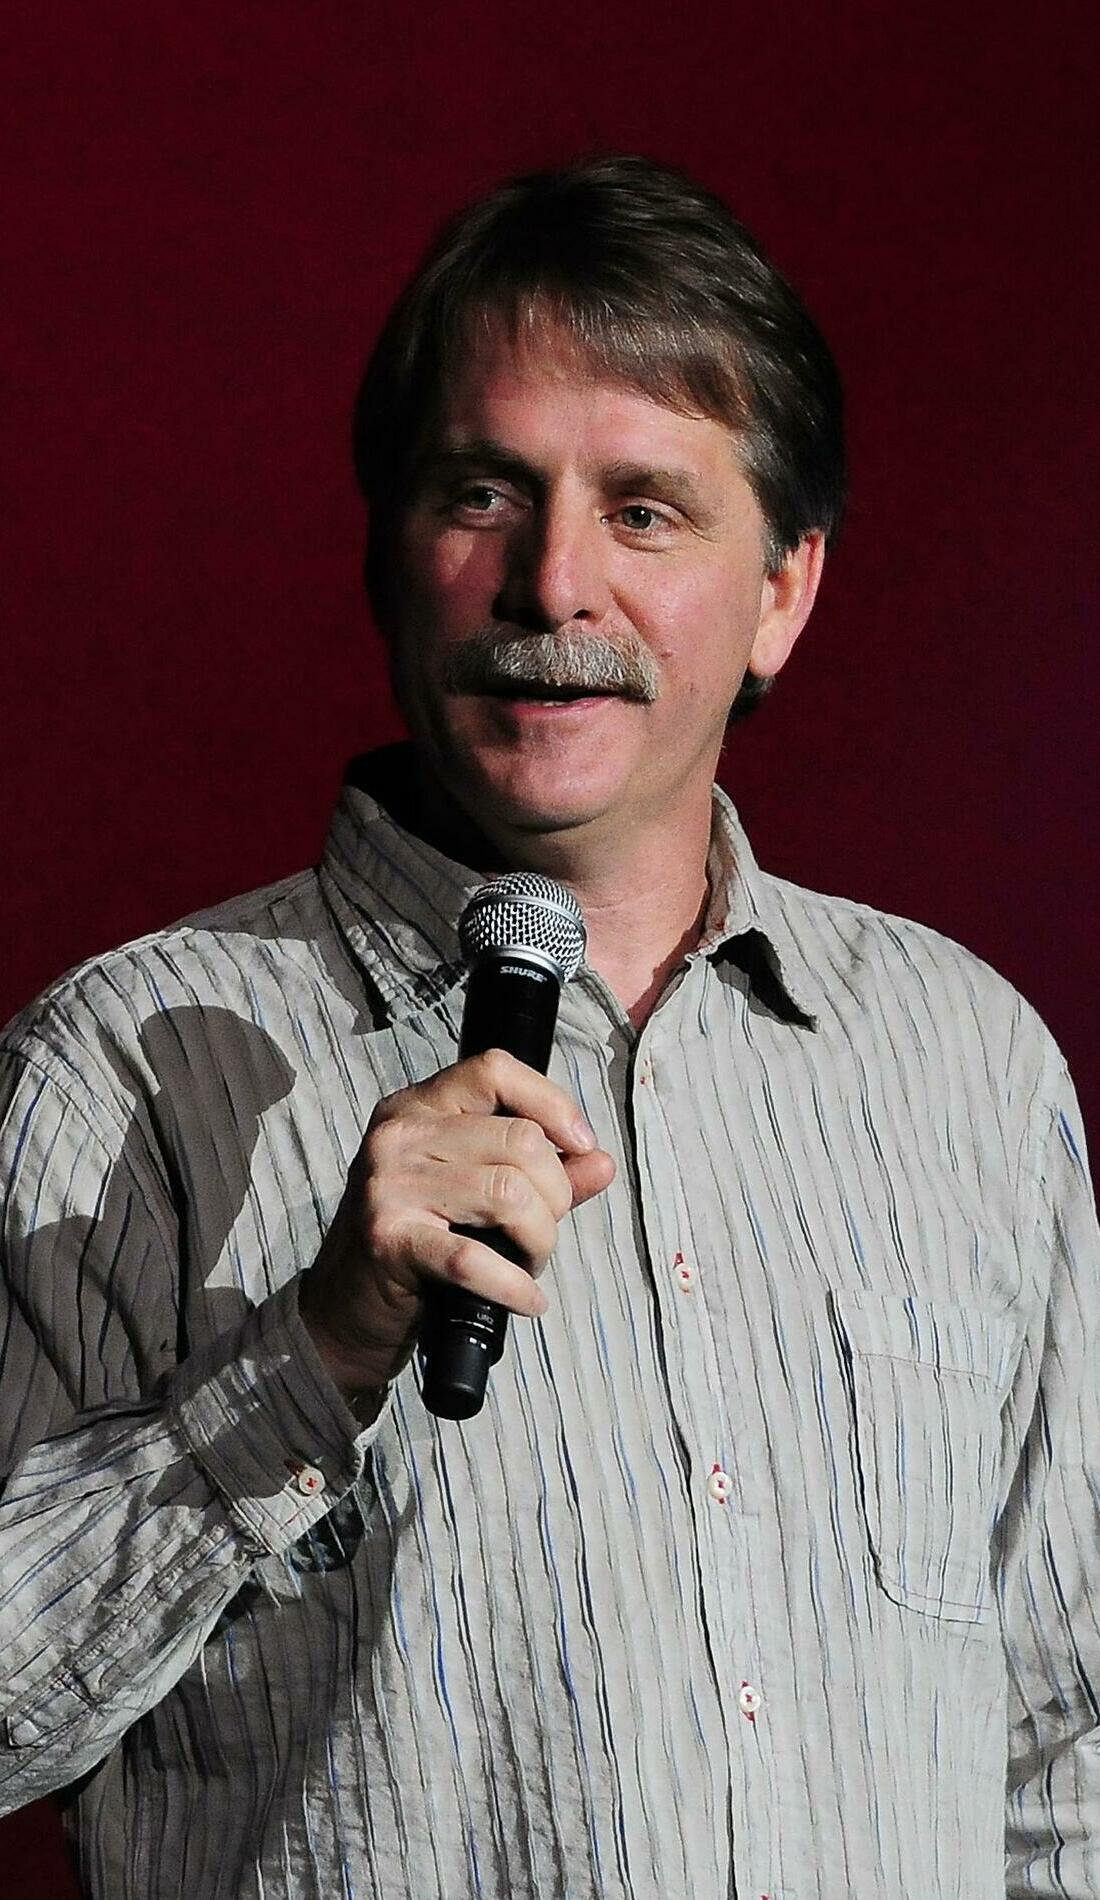 A Jeff Foxworthy live event